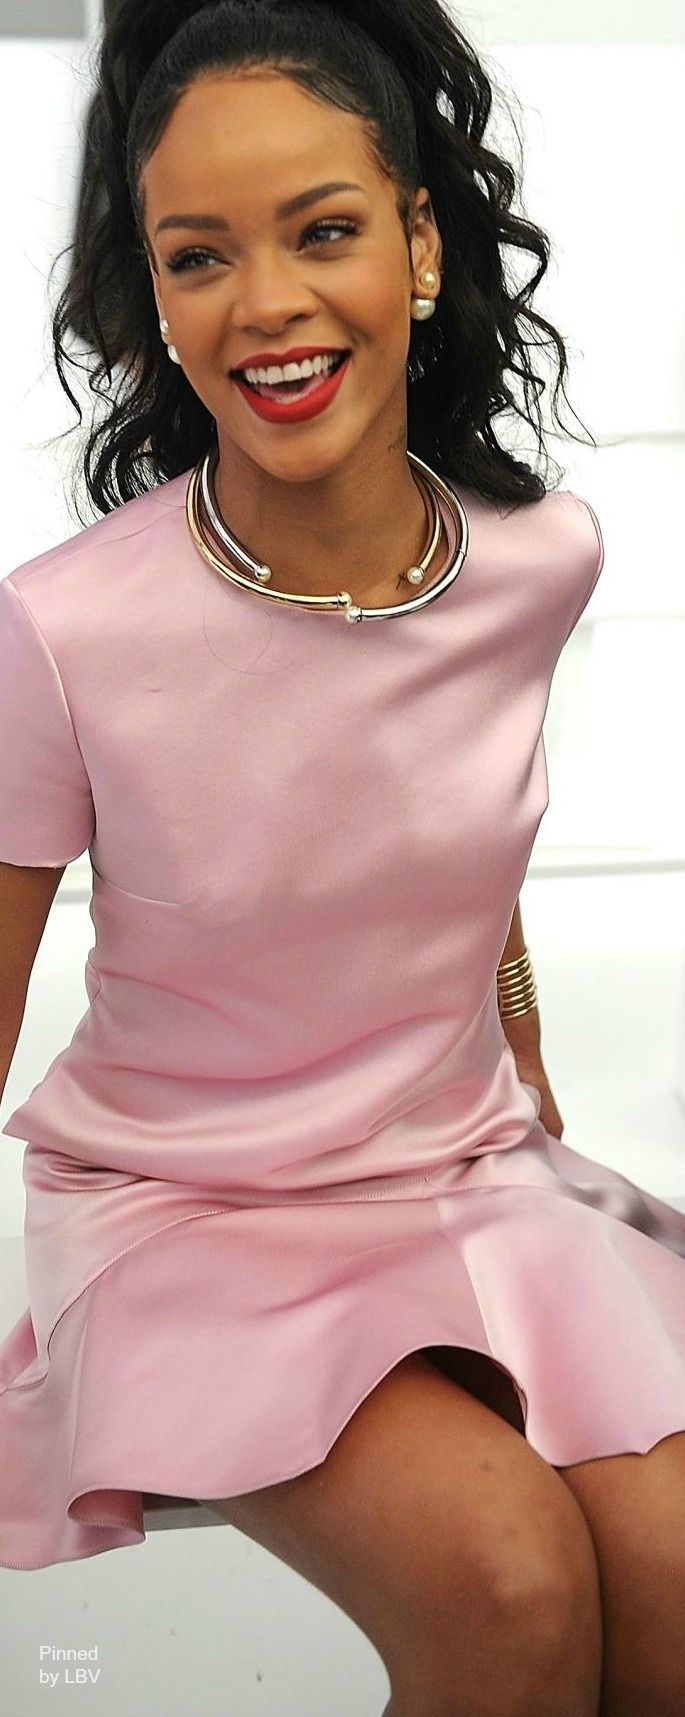 Rhianna in Dior Pink | LBV ♥✤ | BeStayBeautiful ~ I remember her first Stateside debut wearing a blue short summer dress singing on Morning News, I said at that moment, she has star power. LugalBanda